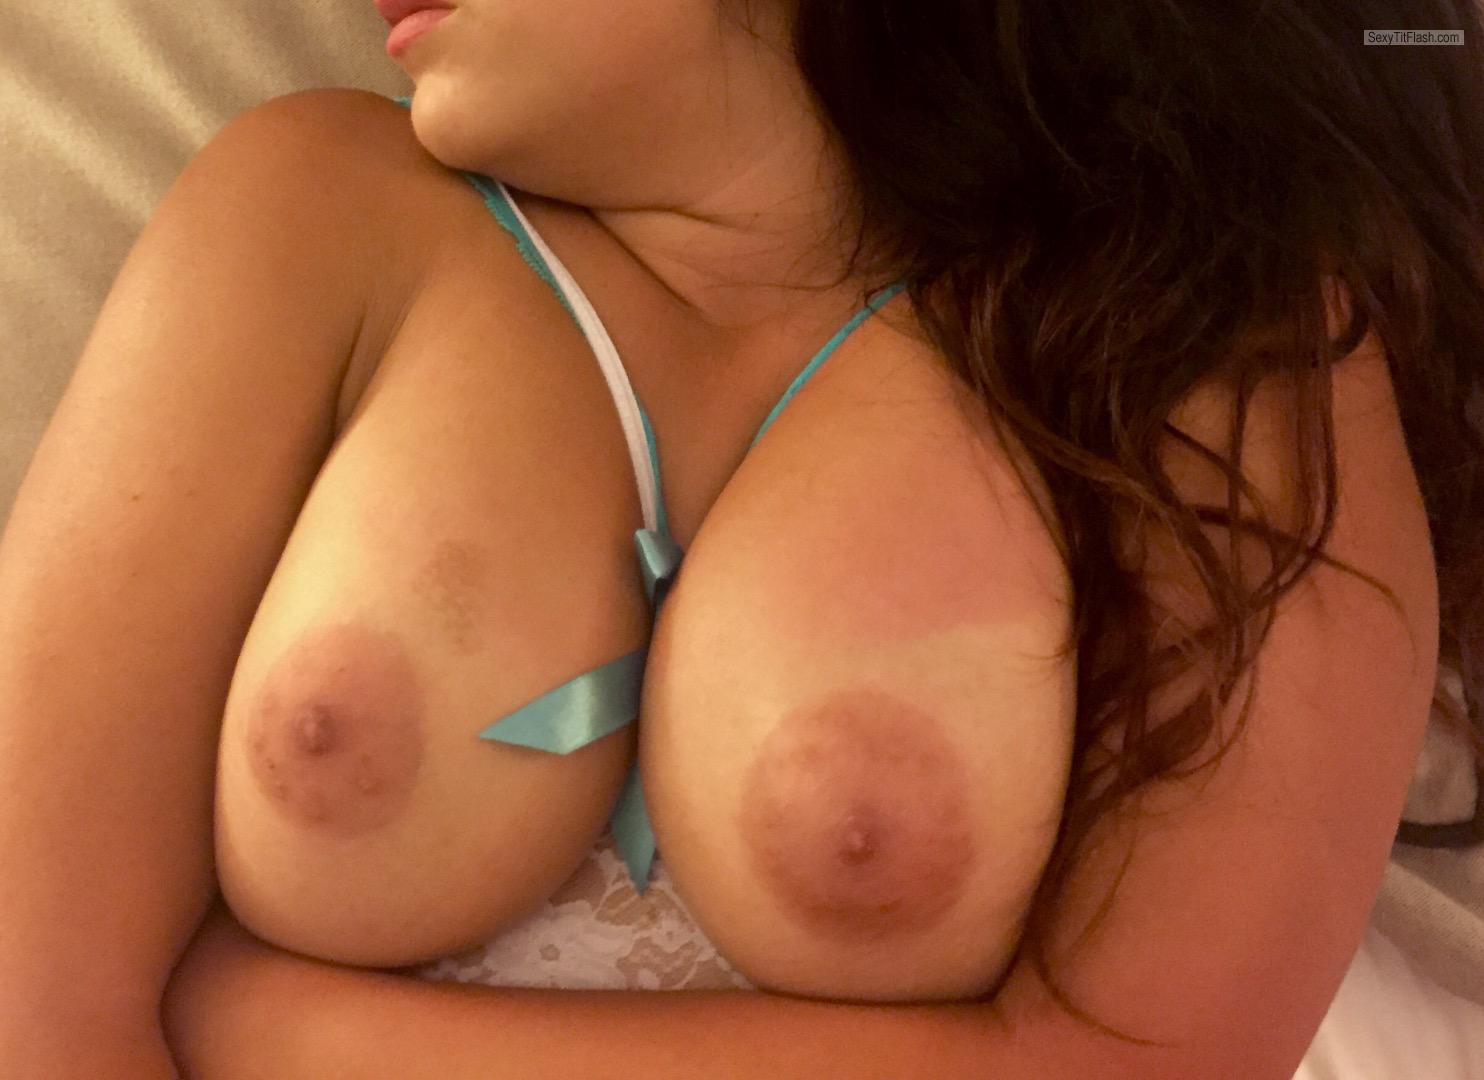 Tit Flash: Girlfriend's Big Tits - Bigguns from United States